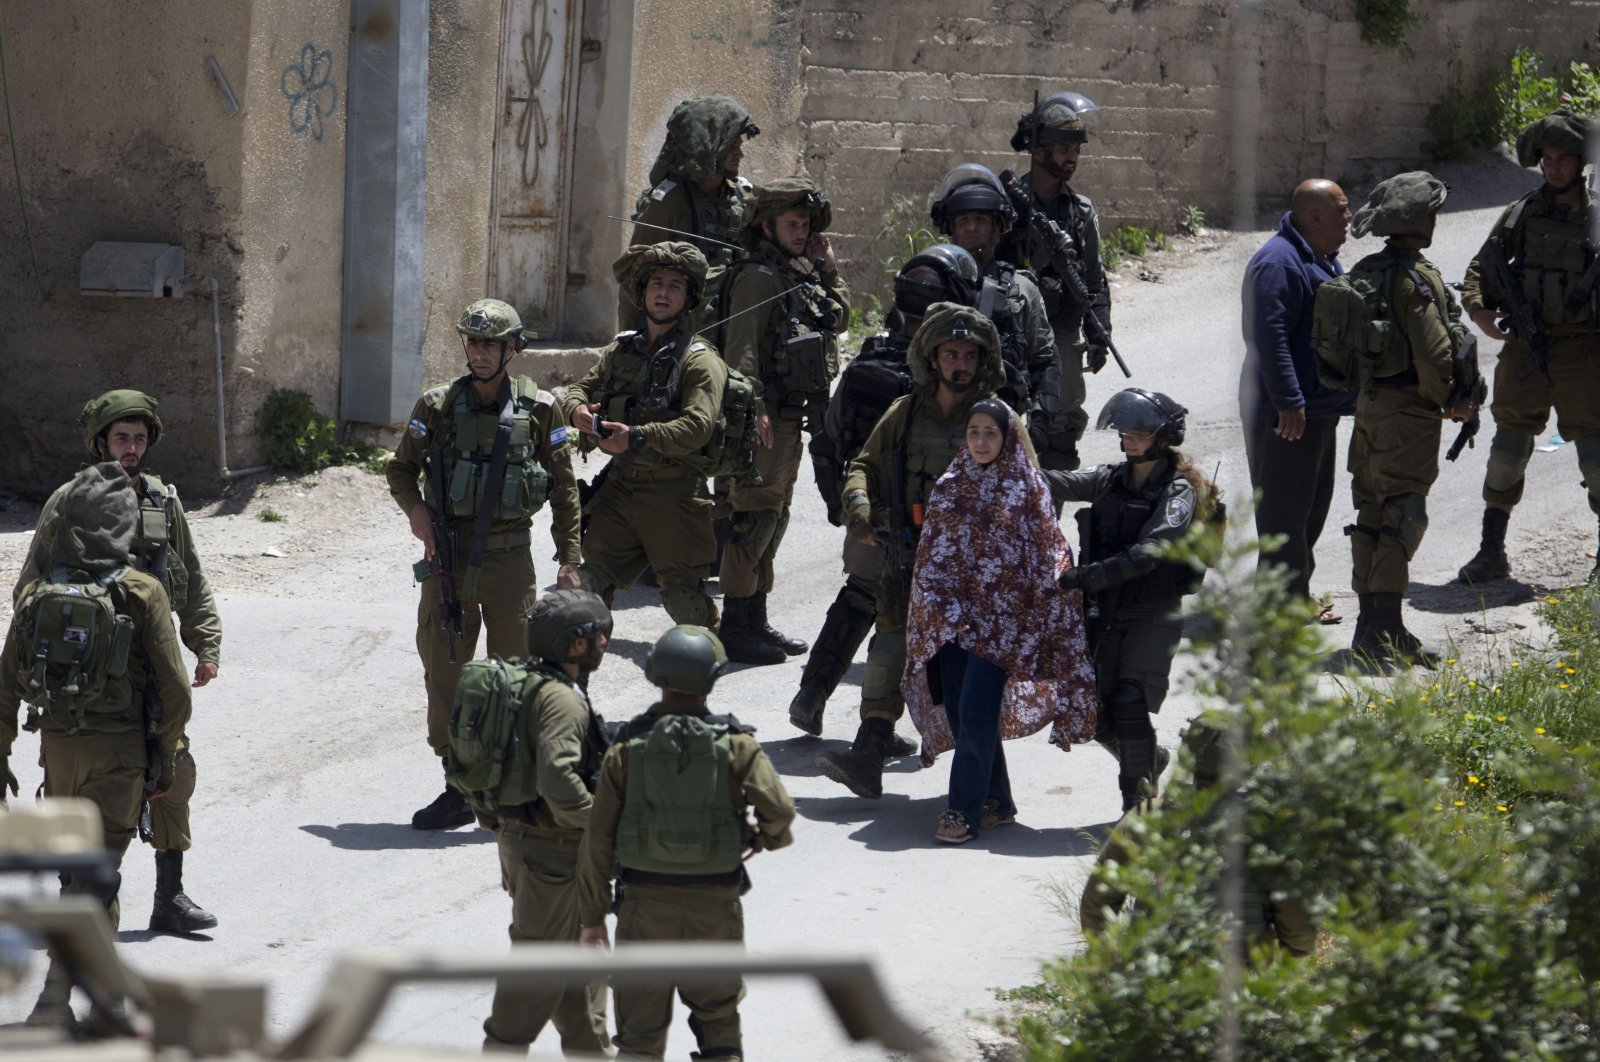 Israeli soldiers arrest a Palestinian in the village of Ya'bad near the occupied West Bank city of Jenin, Palestine, May 12, 2020. (AP Photo)